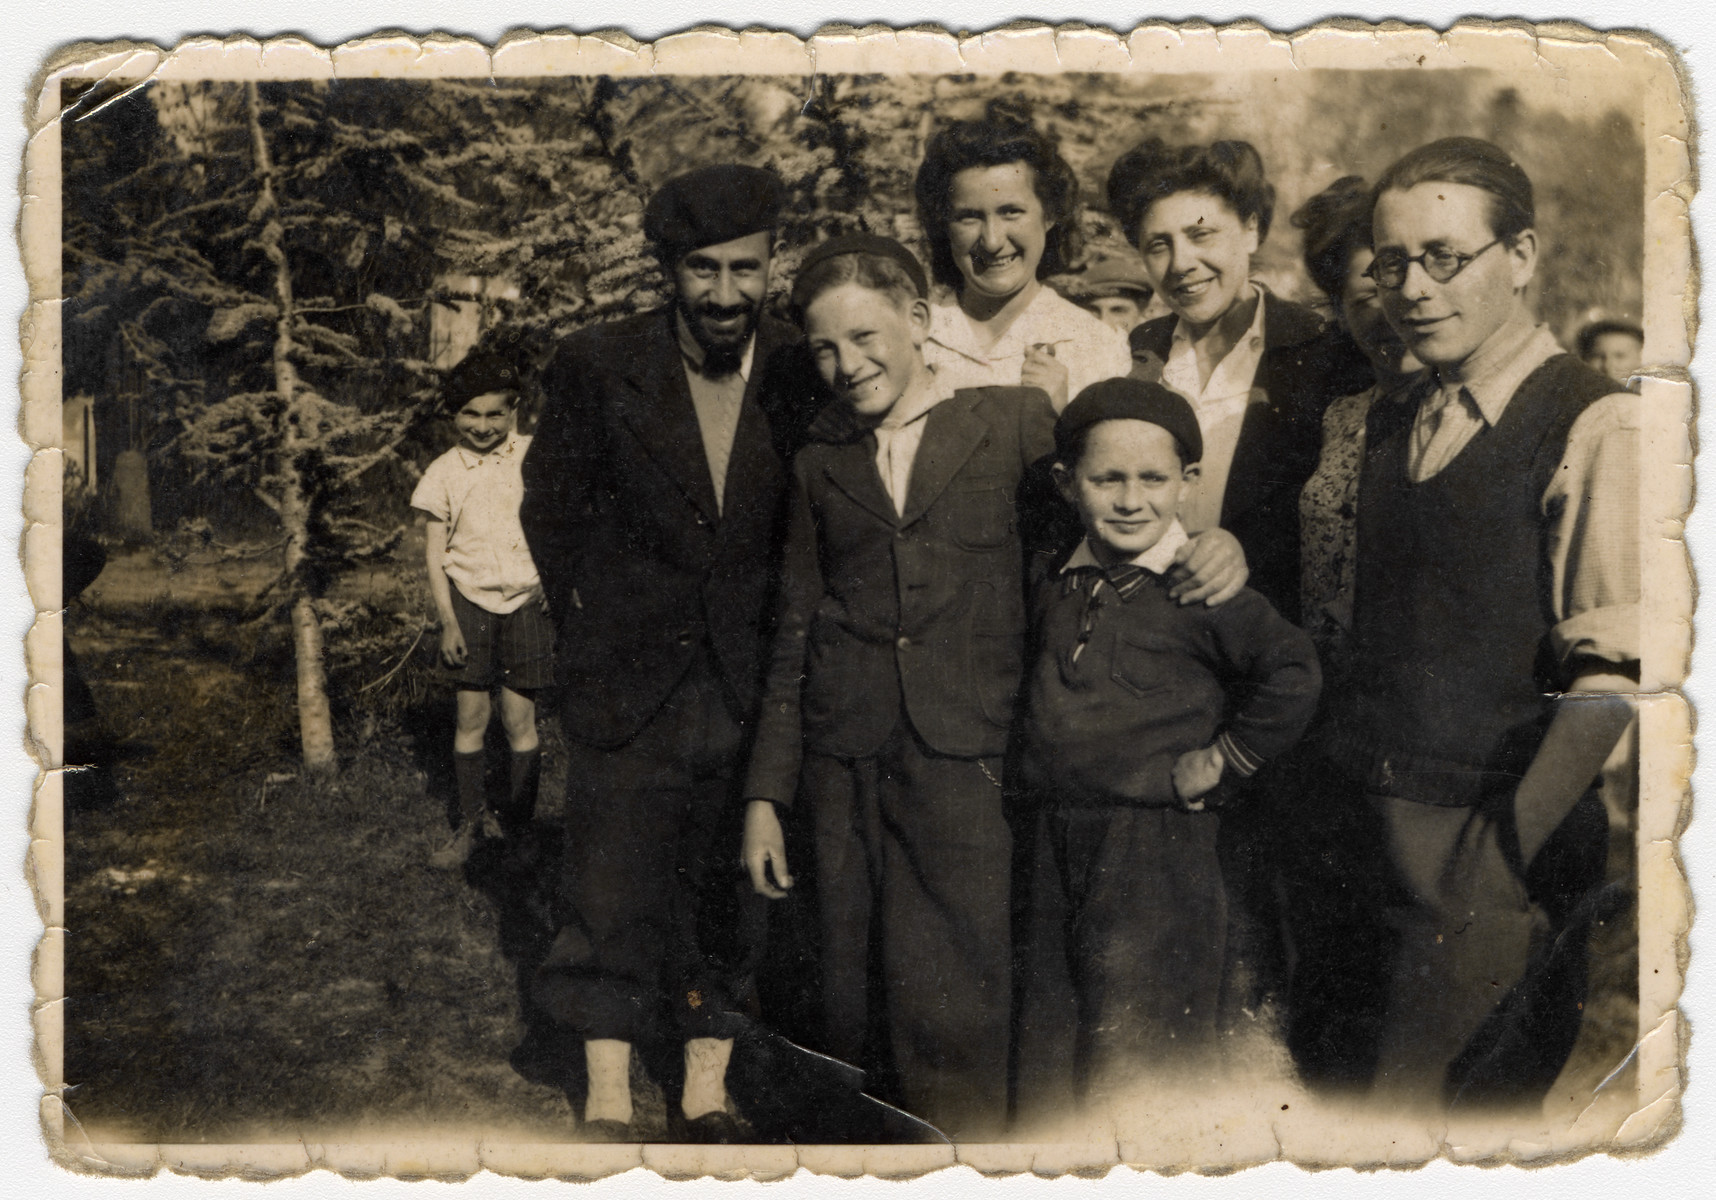 Group portrait of staff and children from the Chateau des Morelles children's home.  Pictured in front are Raphael and Markus Horowitz.  Standing left to right are Mr. Amsel, Myriam (Weichselbaum) Dybnis, Mrs. Brown, and [possibly Henry Dybnis].